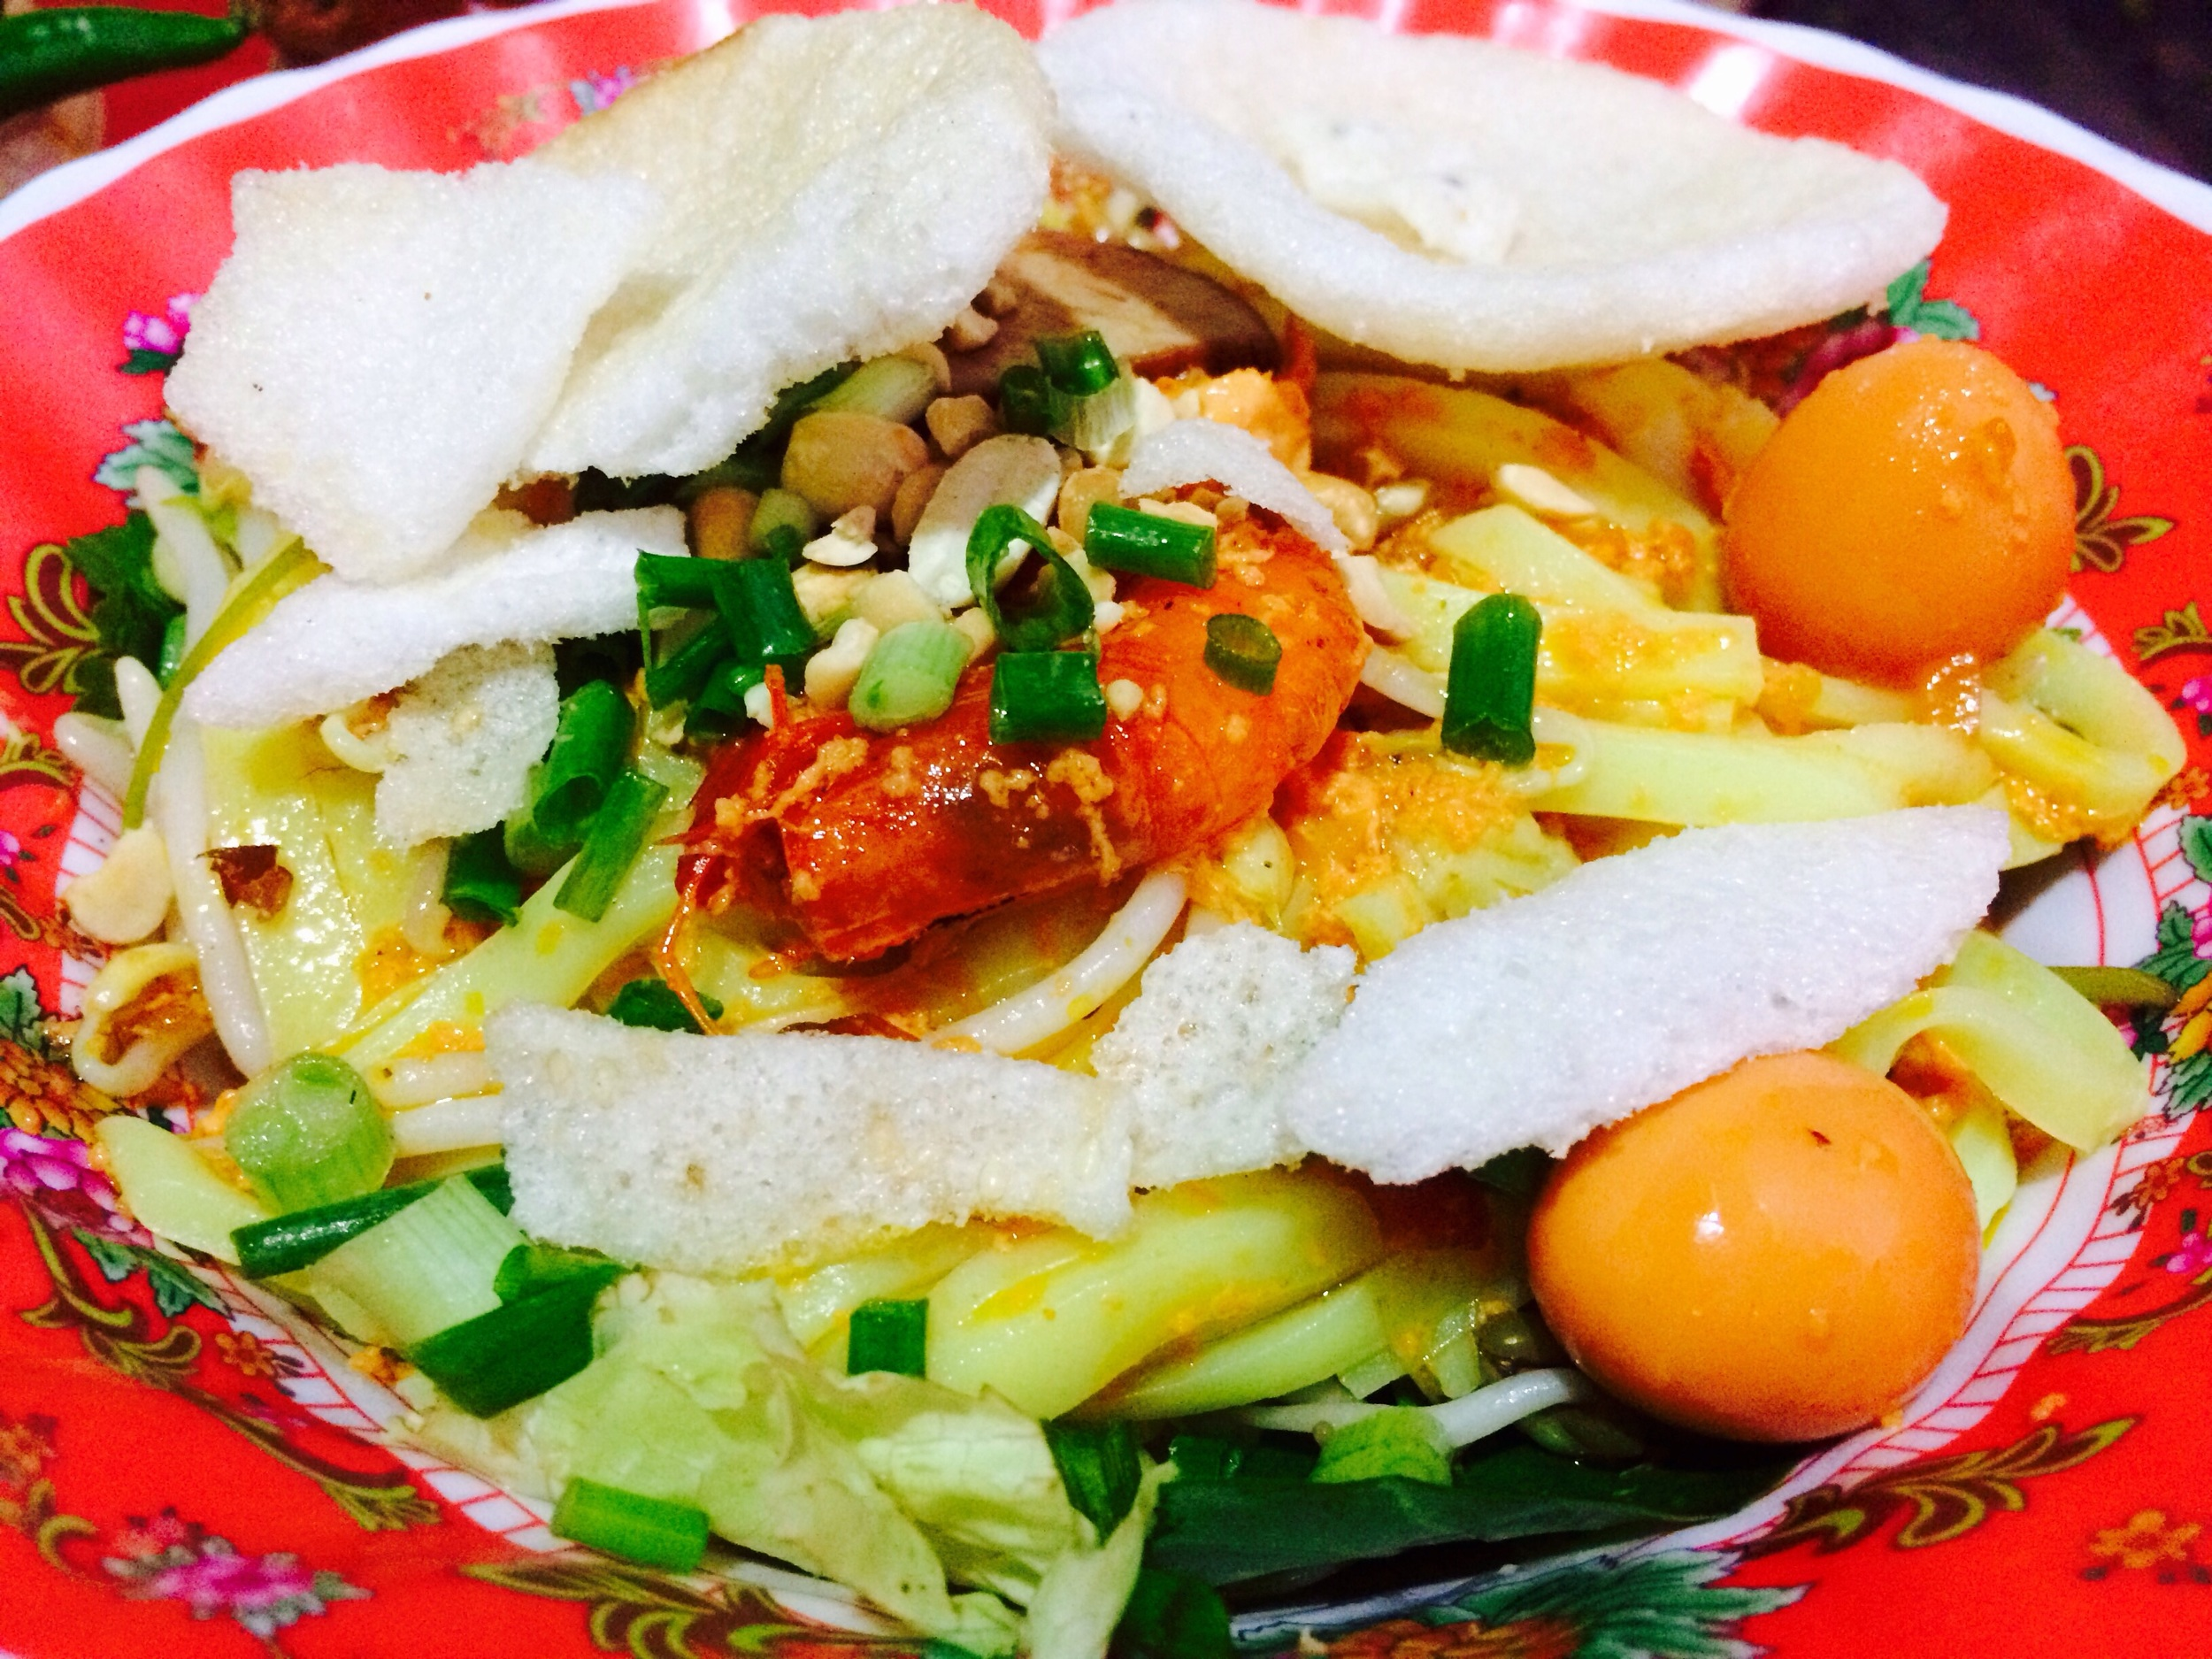 Cao làu  is a signature dish from Hoi An that consists of wheat flour noodles in a small amount of broth. This one includes prawns and quail eggs.